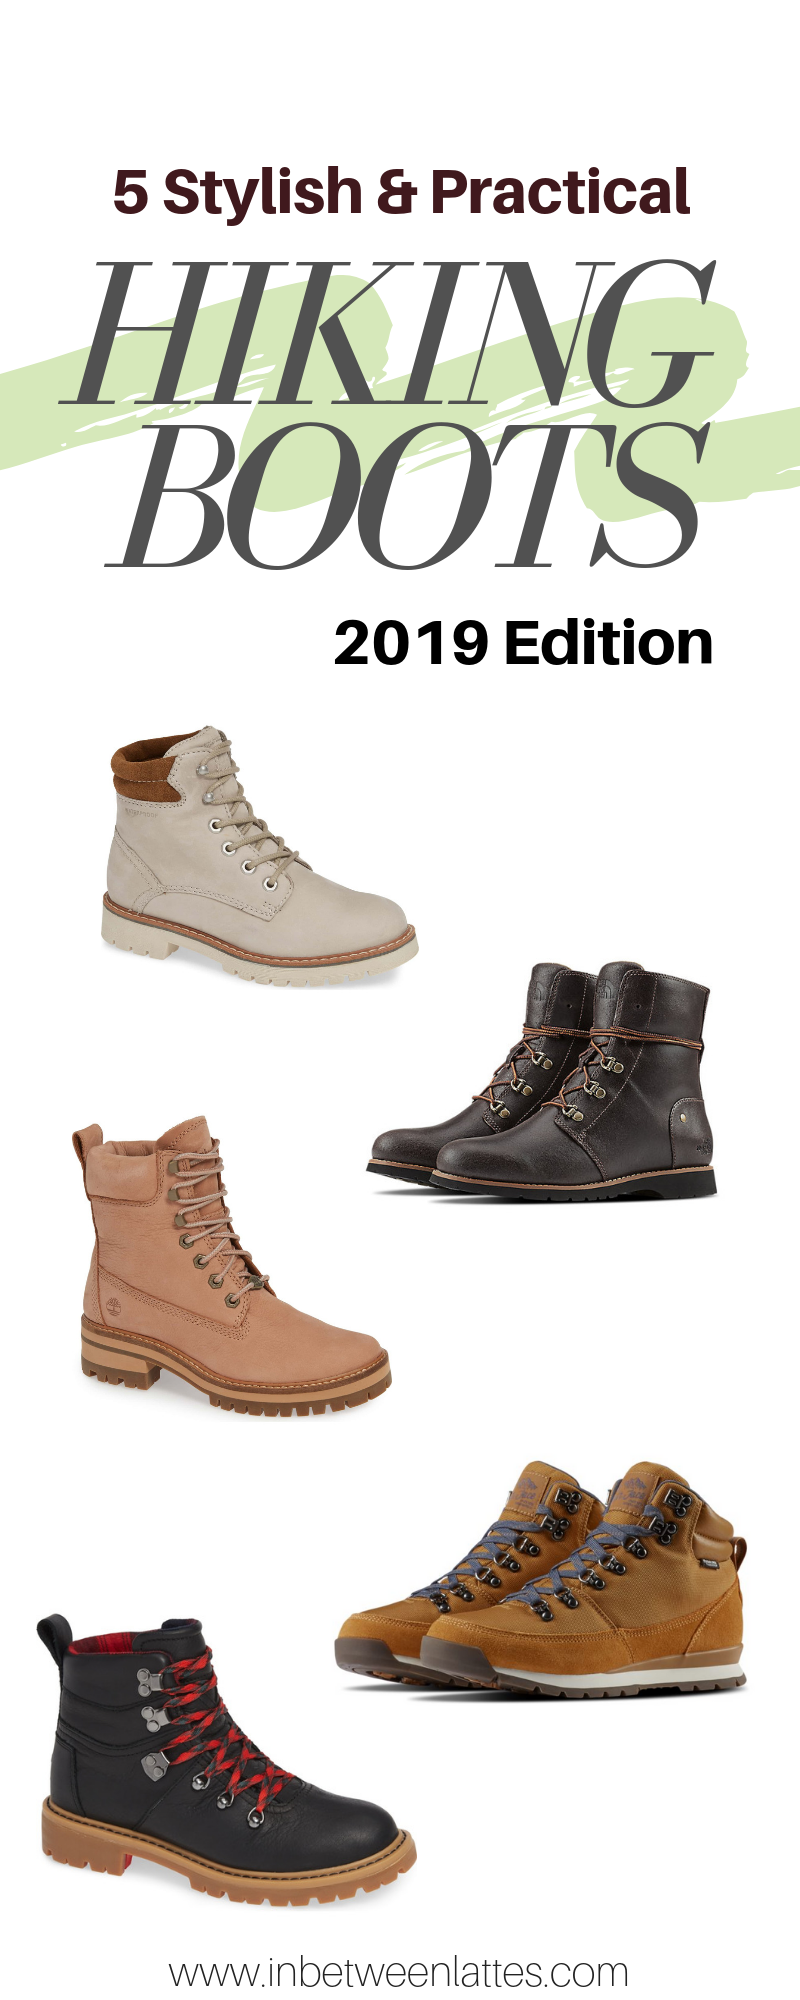 5 Stylish And Practical Hiking Boots For Women 2019 Fave Products